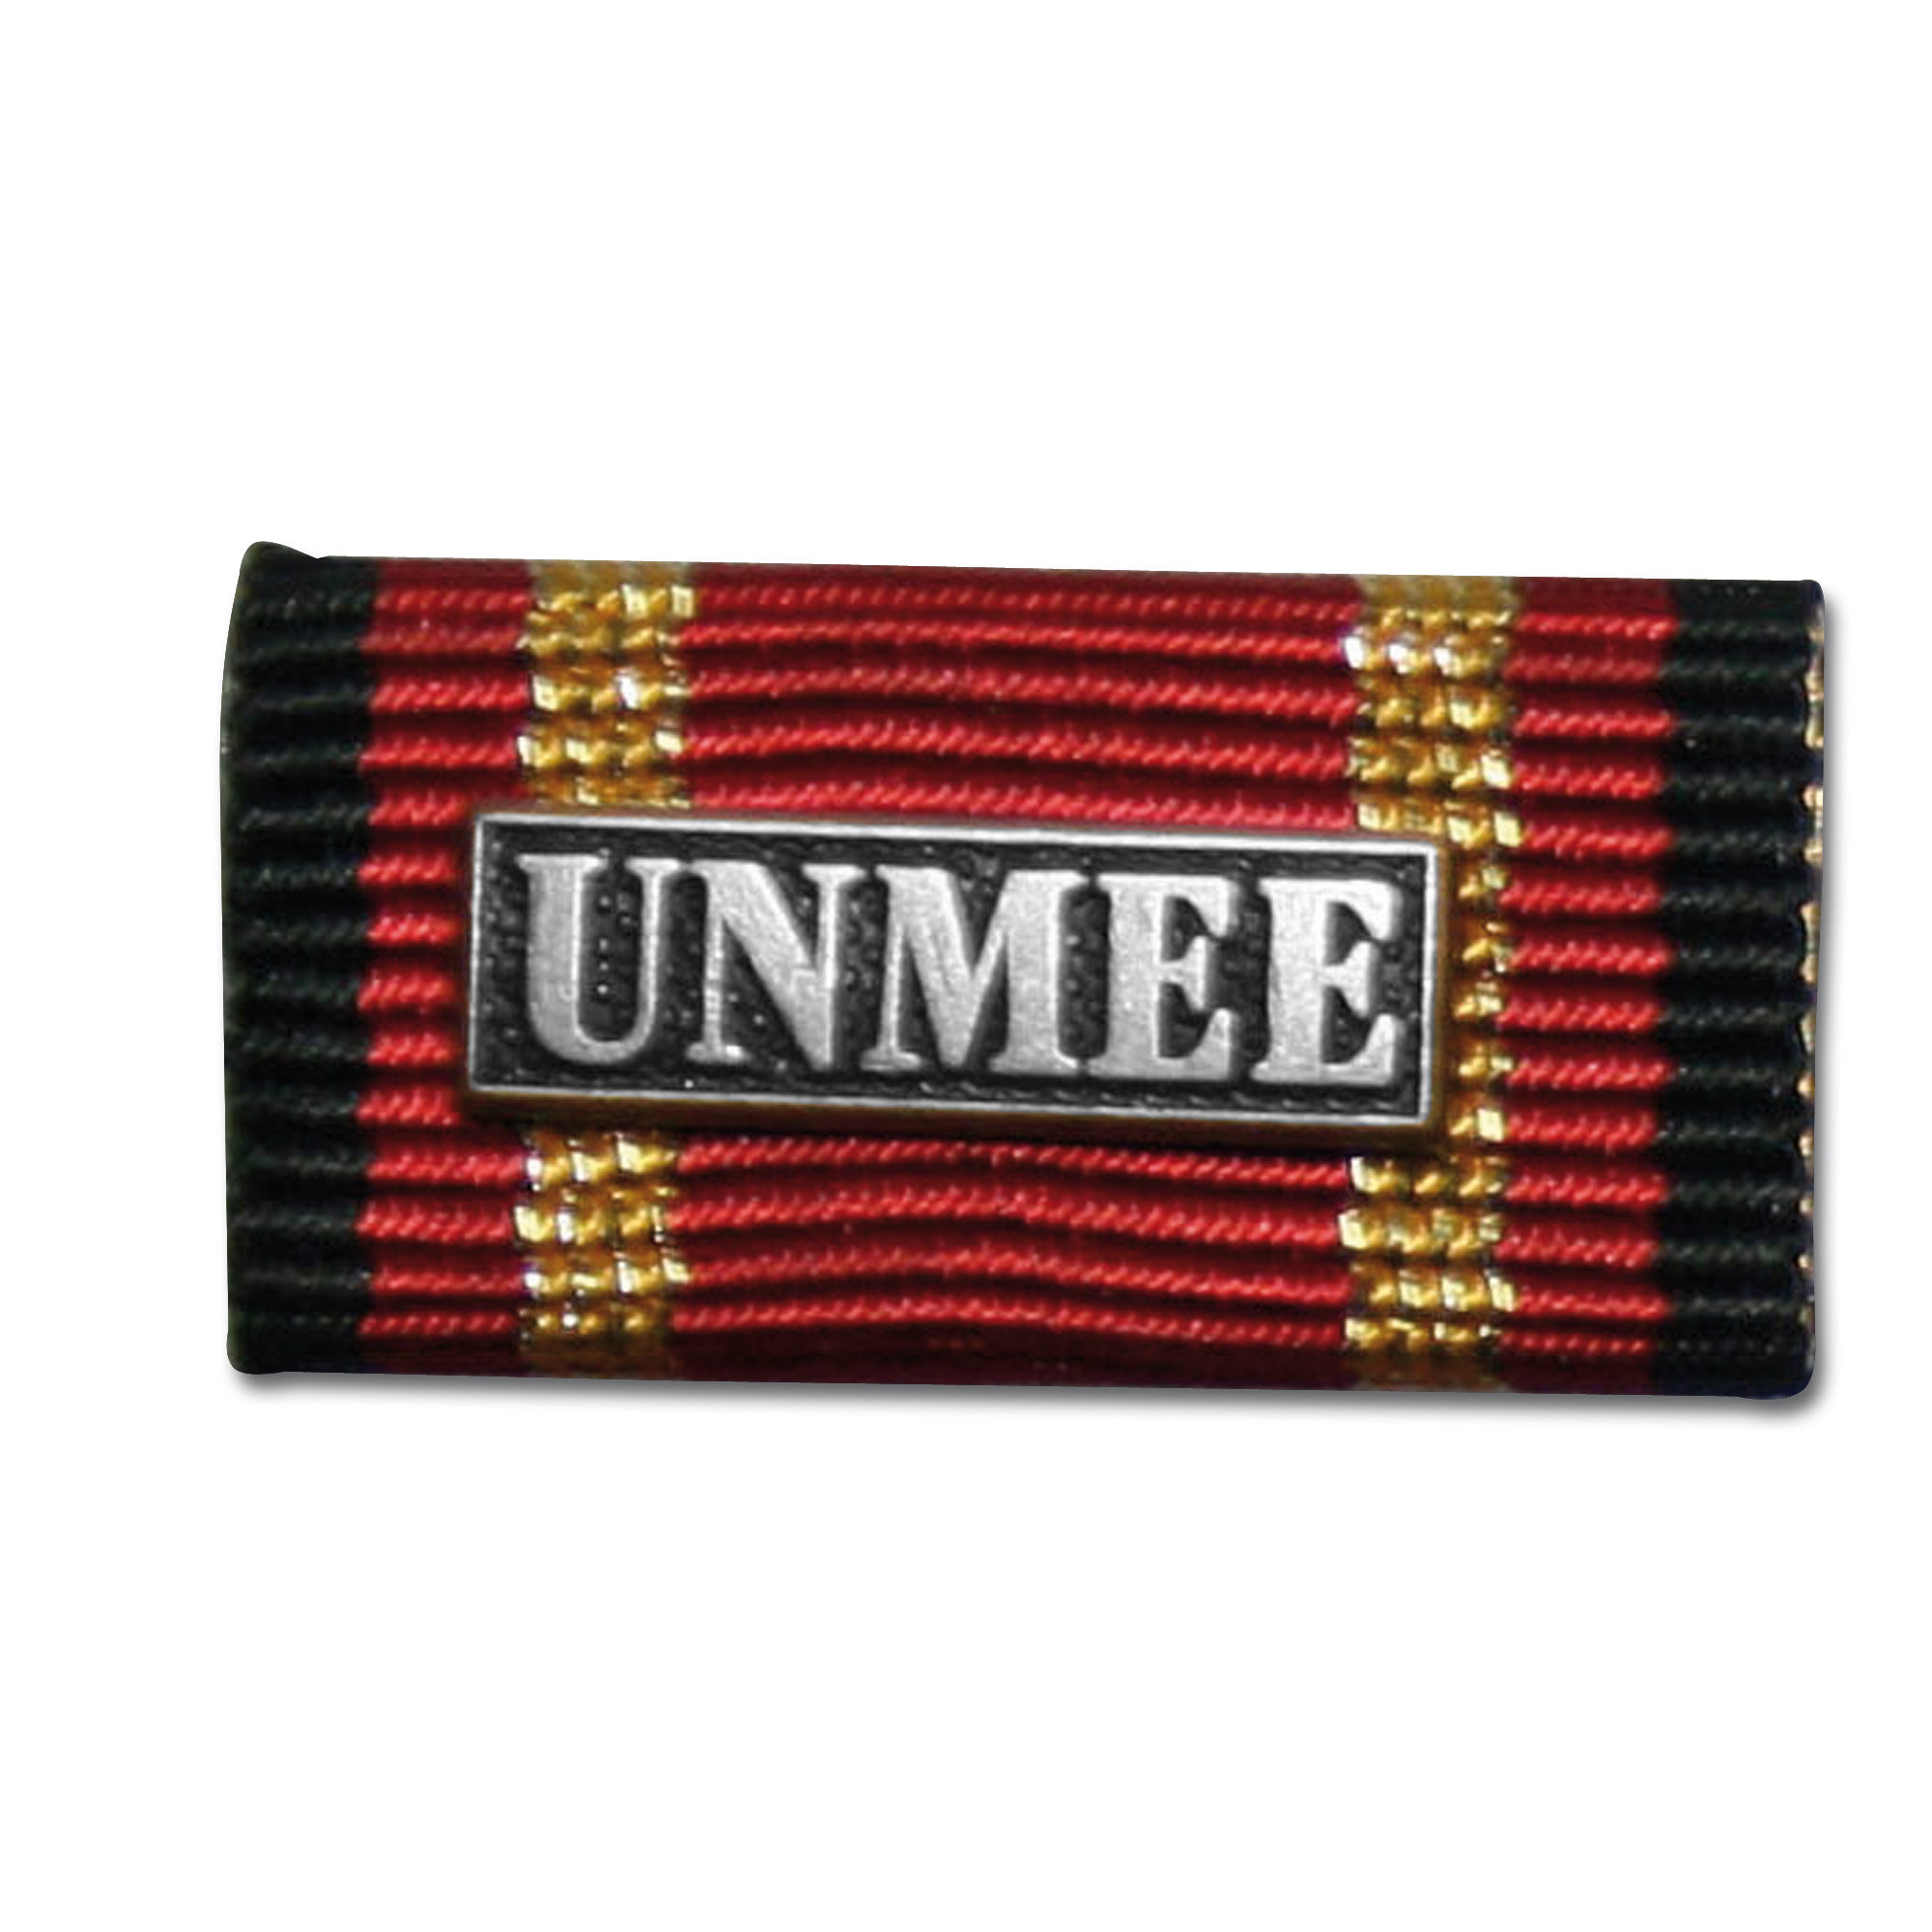 Barrette Opex UNMEE argent